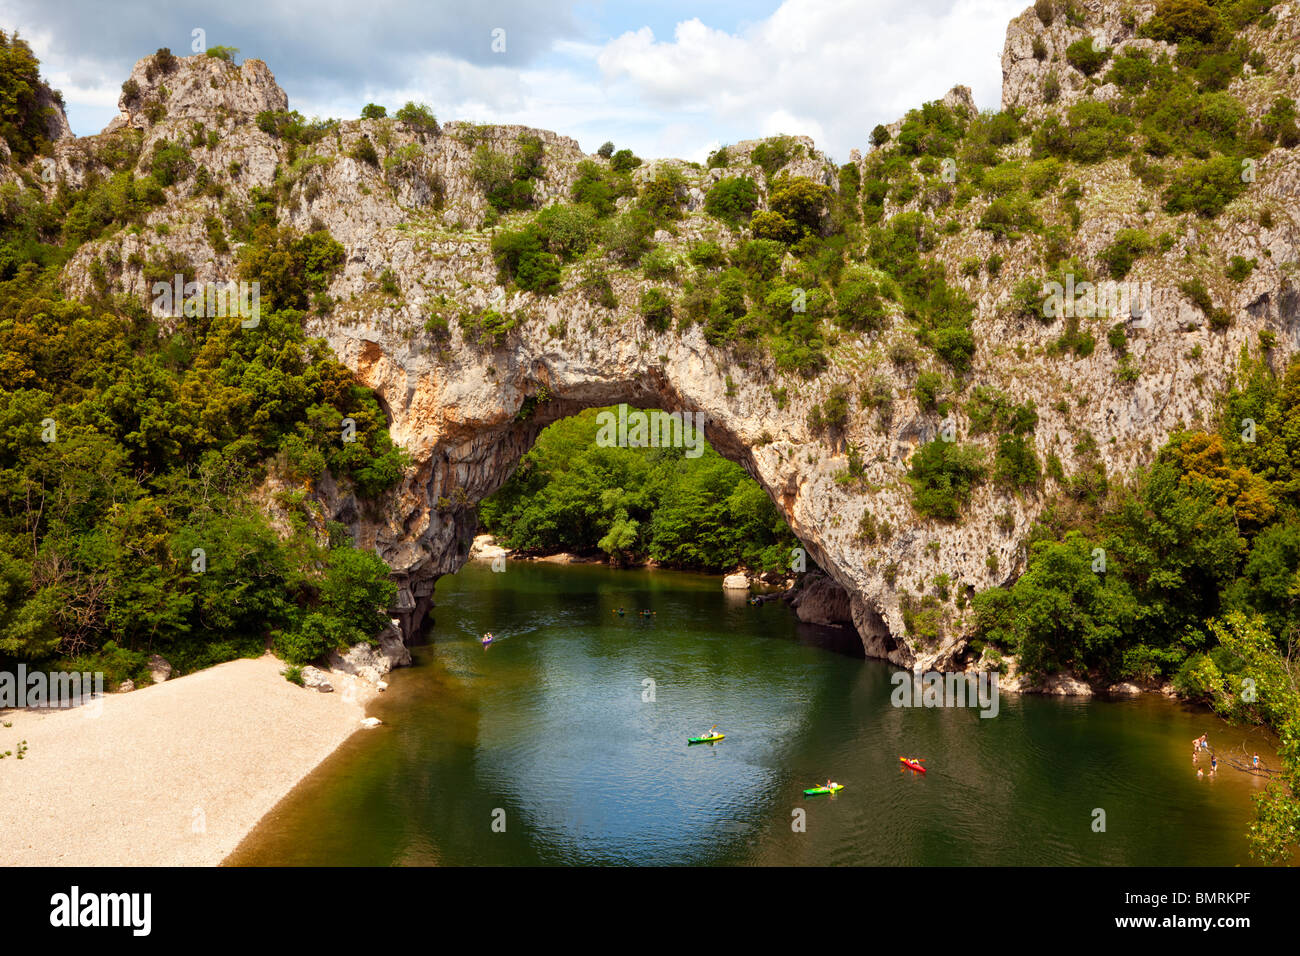 canoeing below the natural stone arch Pont d'arc across the Ardèche river - Stock Image